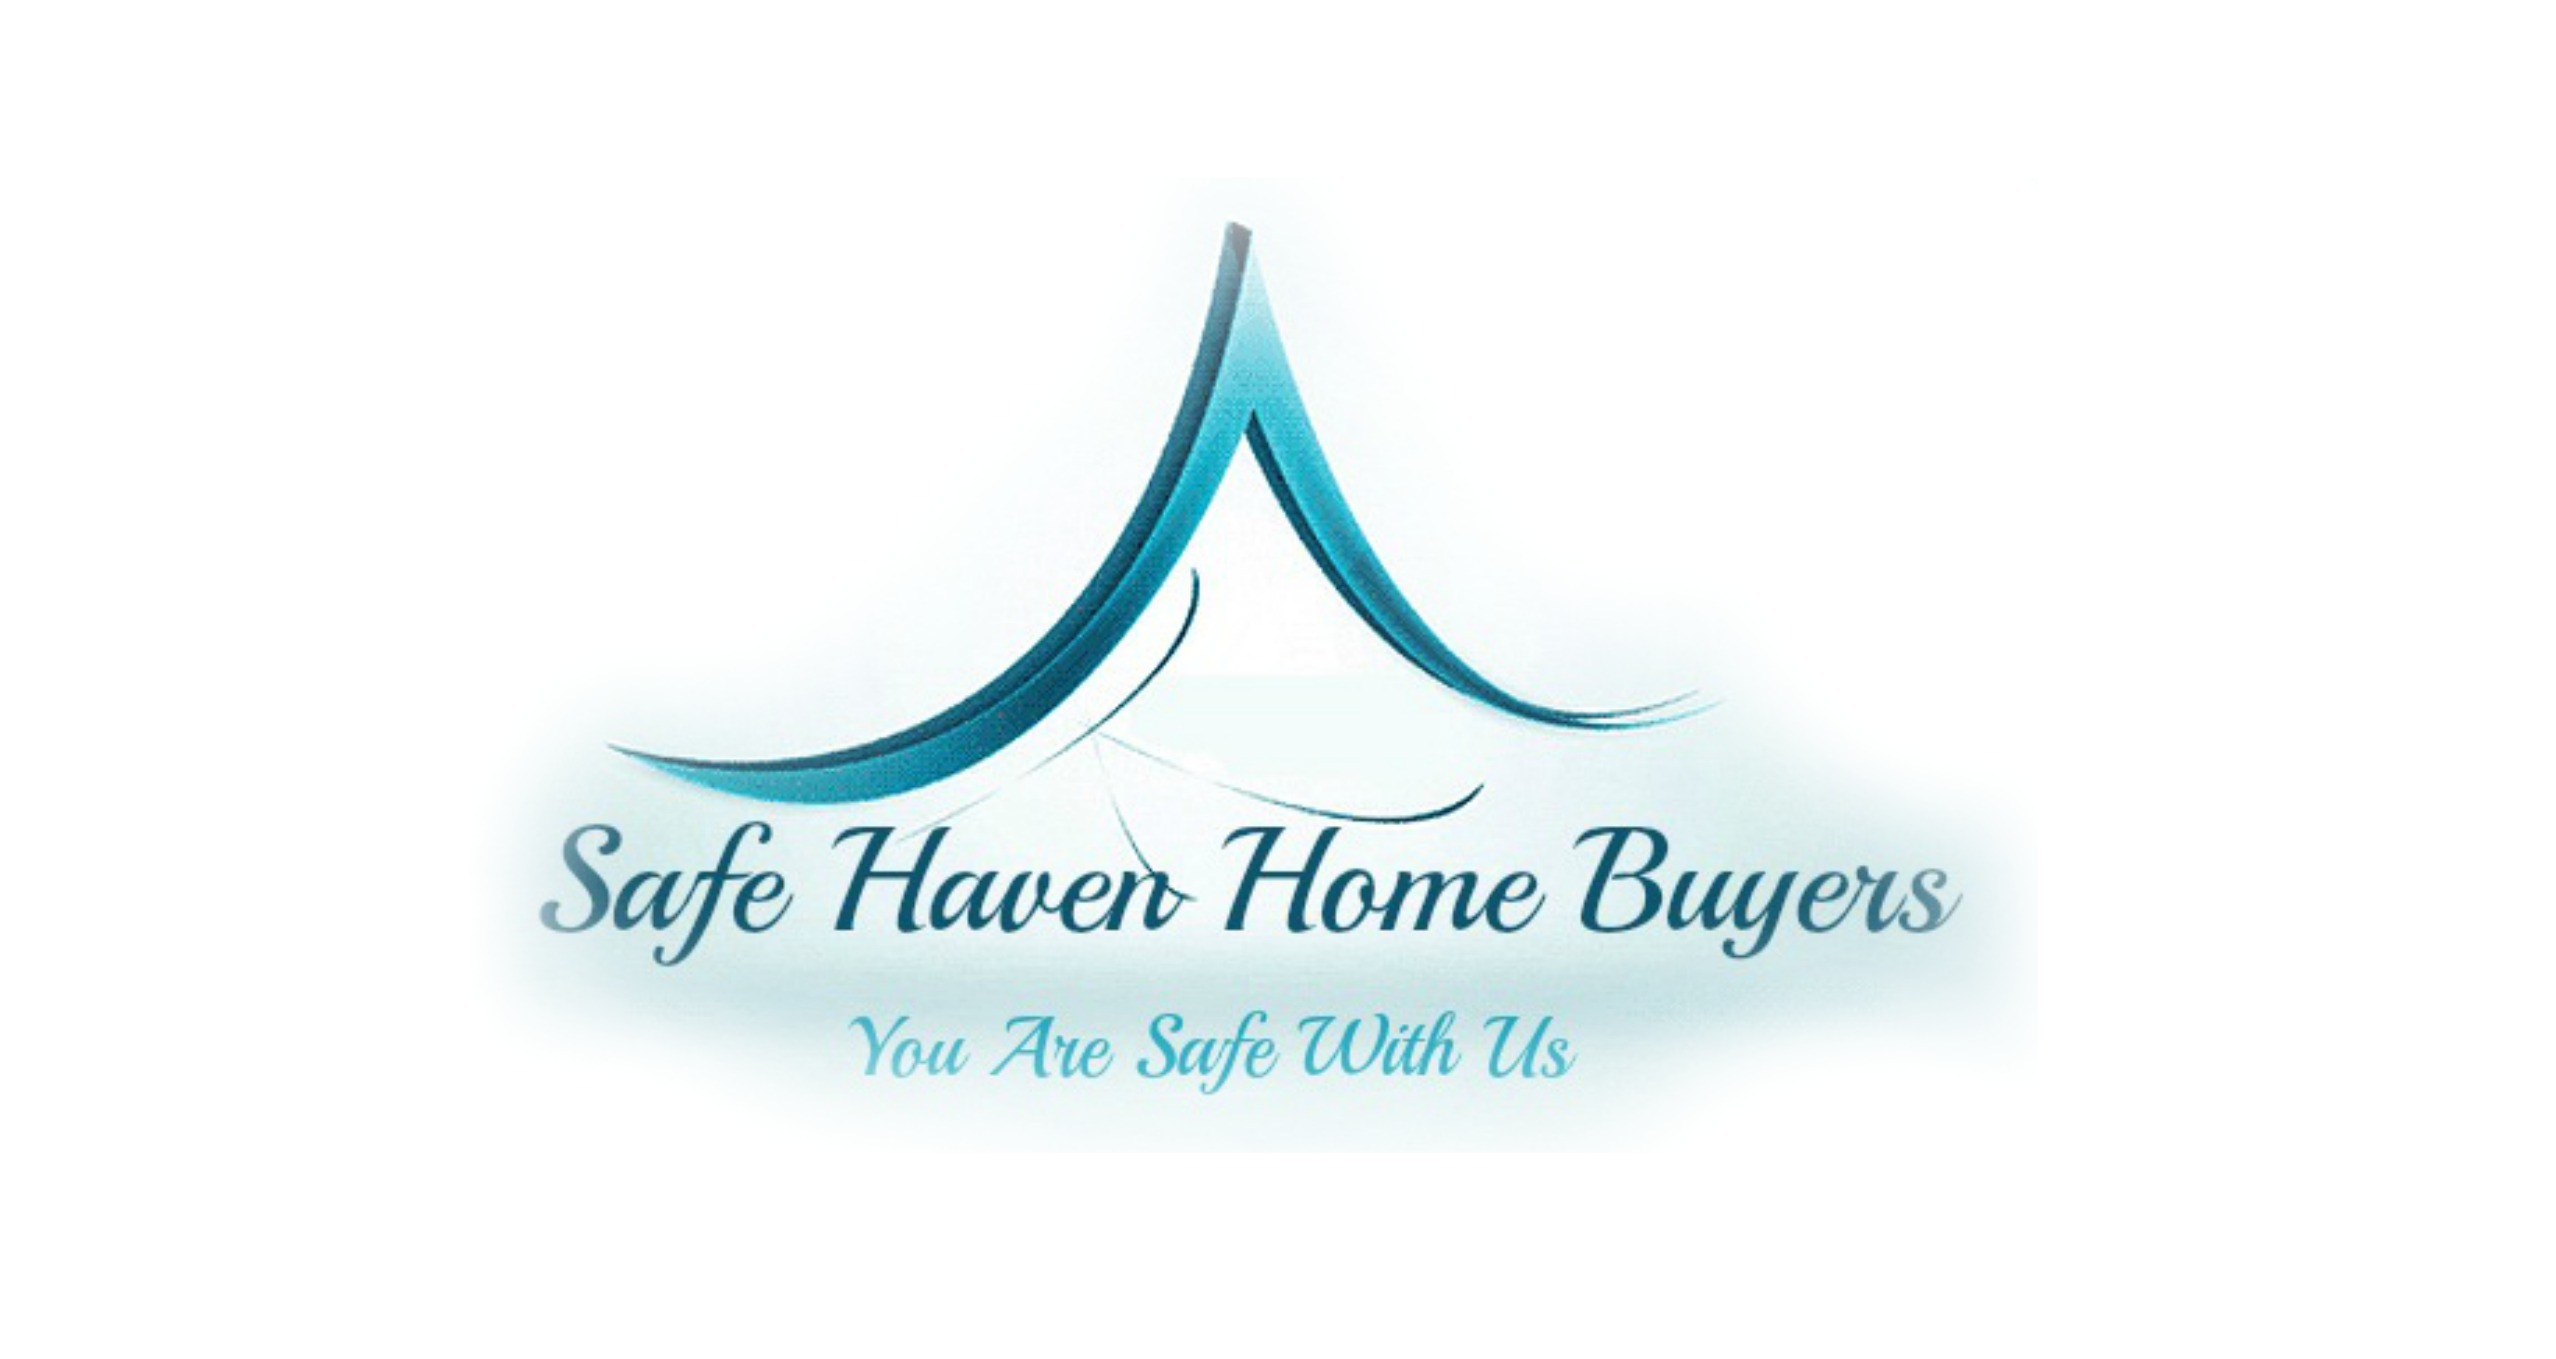 Safe Haven Home Buyers